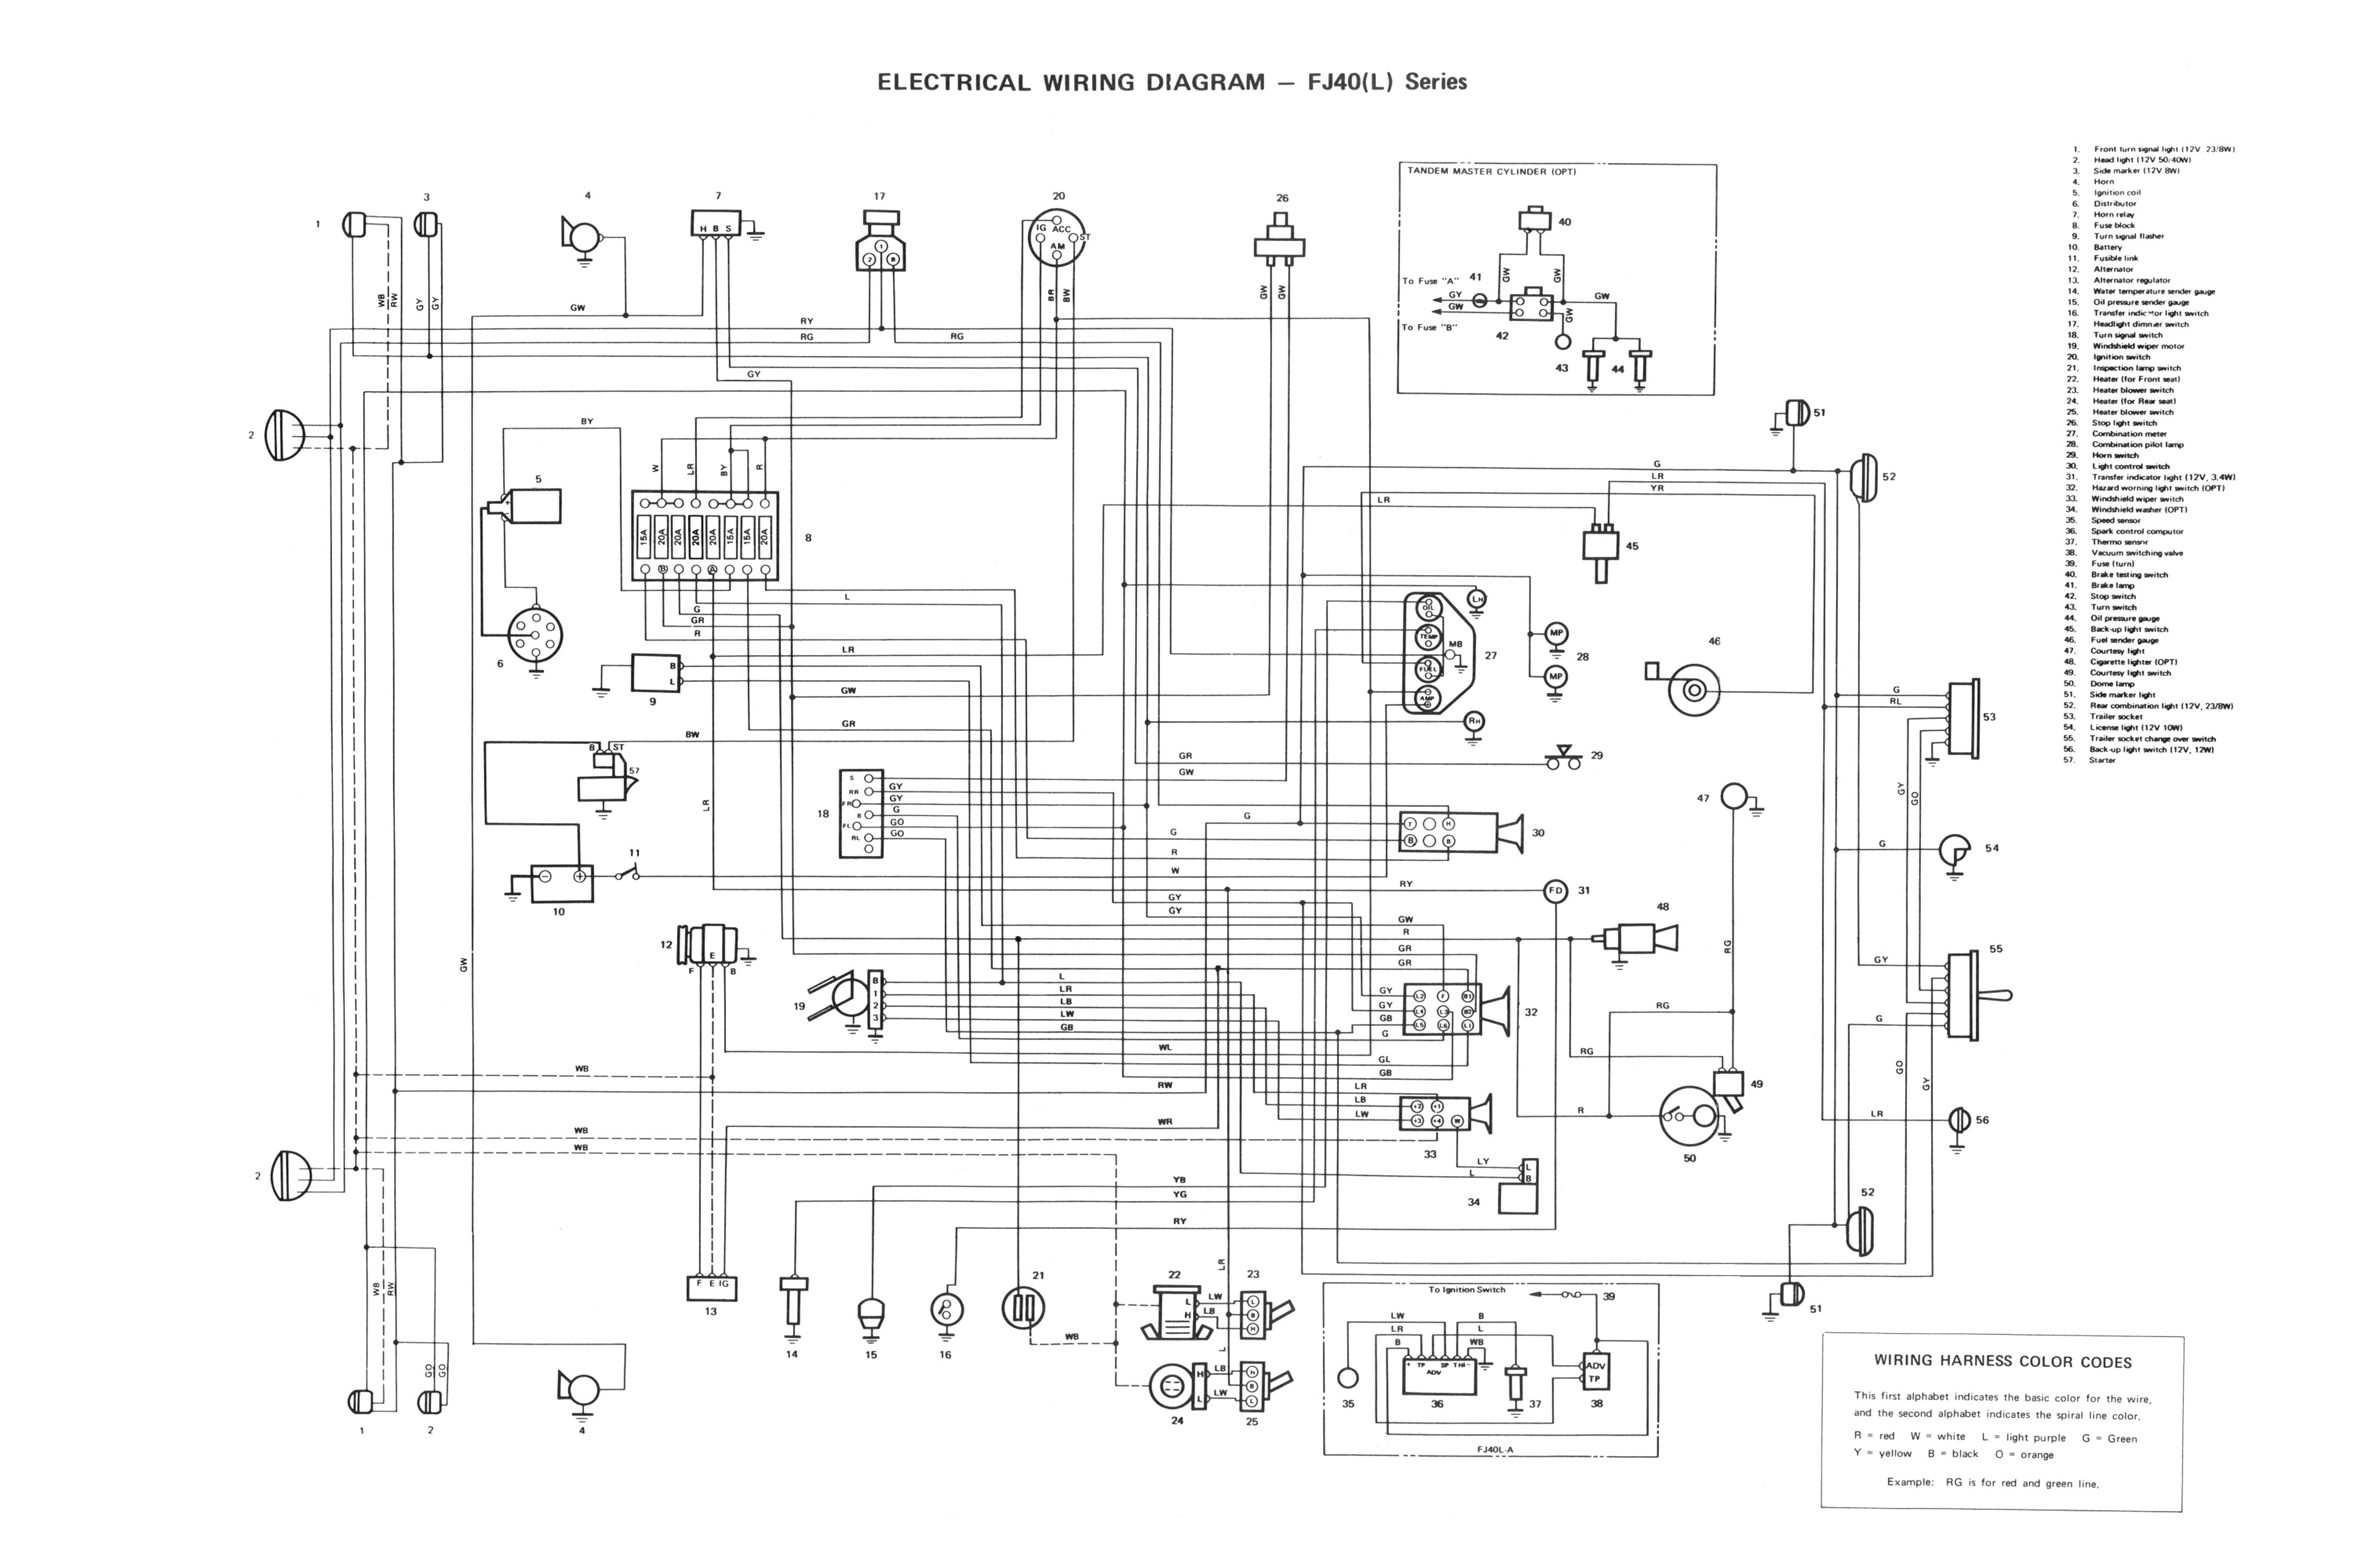 Toyota Land Cruiser Wiring Diagram Vdj79